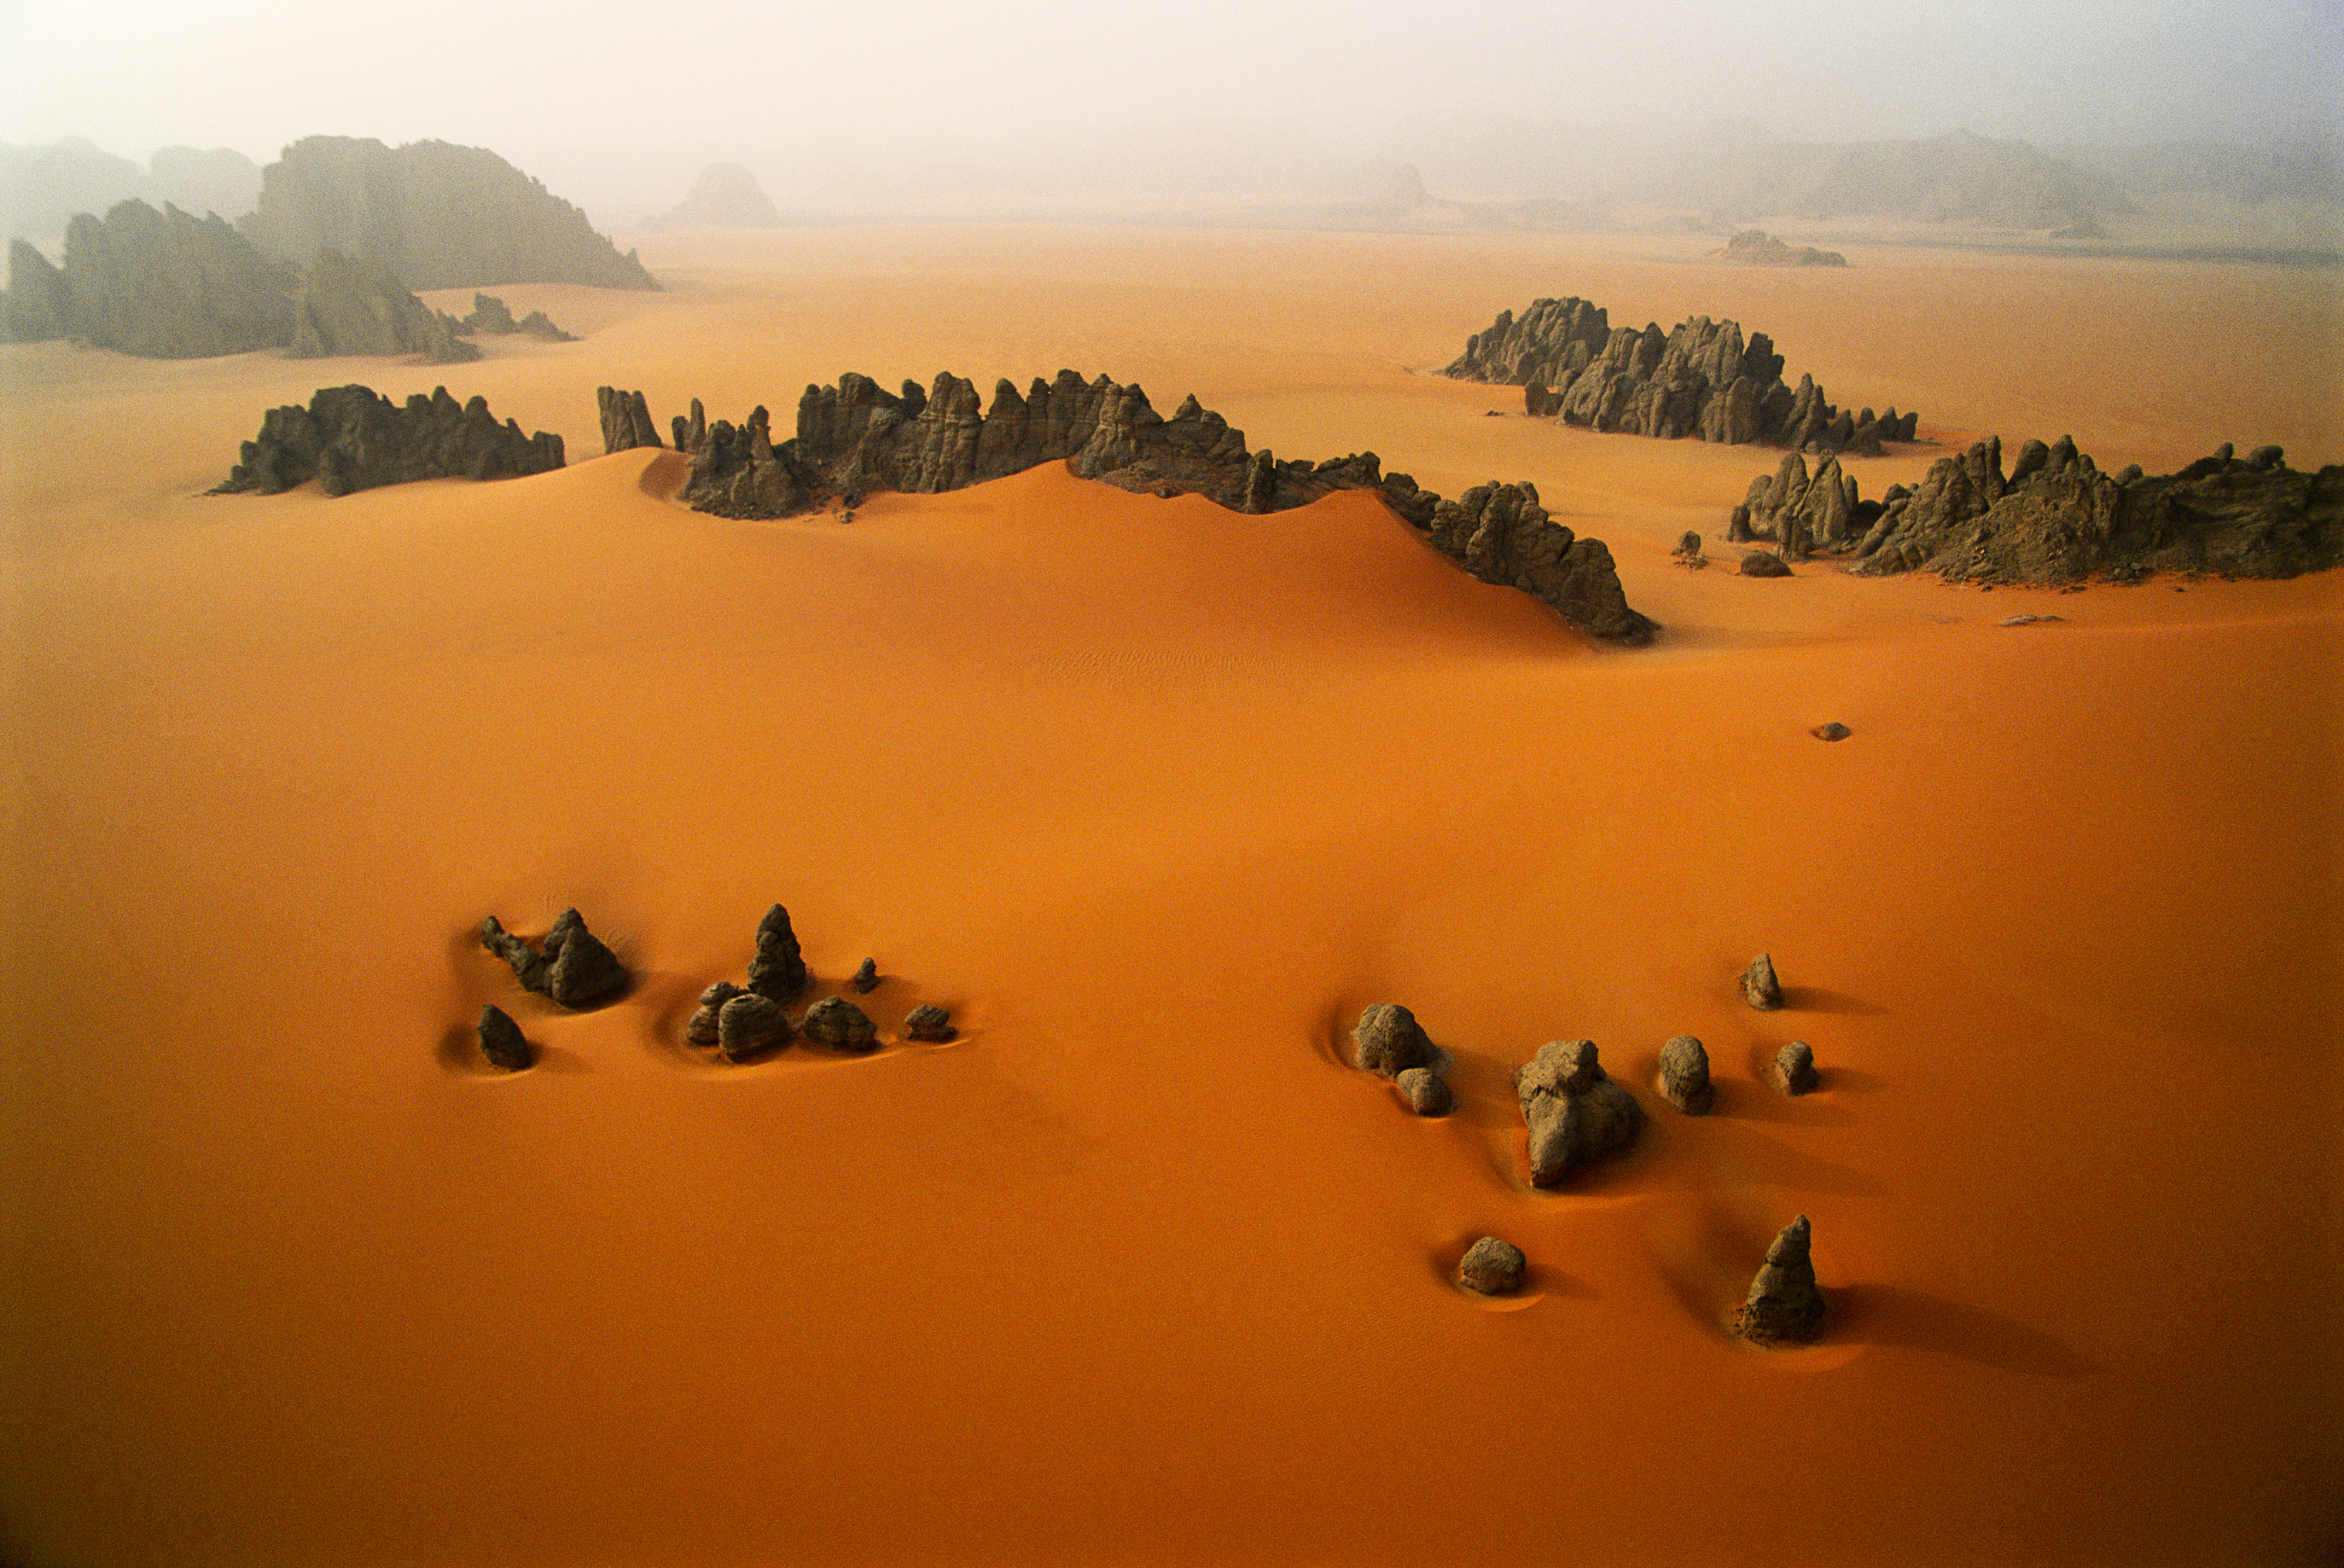 Pinnacles of sandstone rise through the orange dunes of the Karnasai Valley, Chad. Photographed from a paraglider.